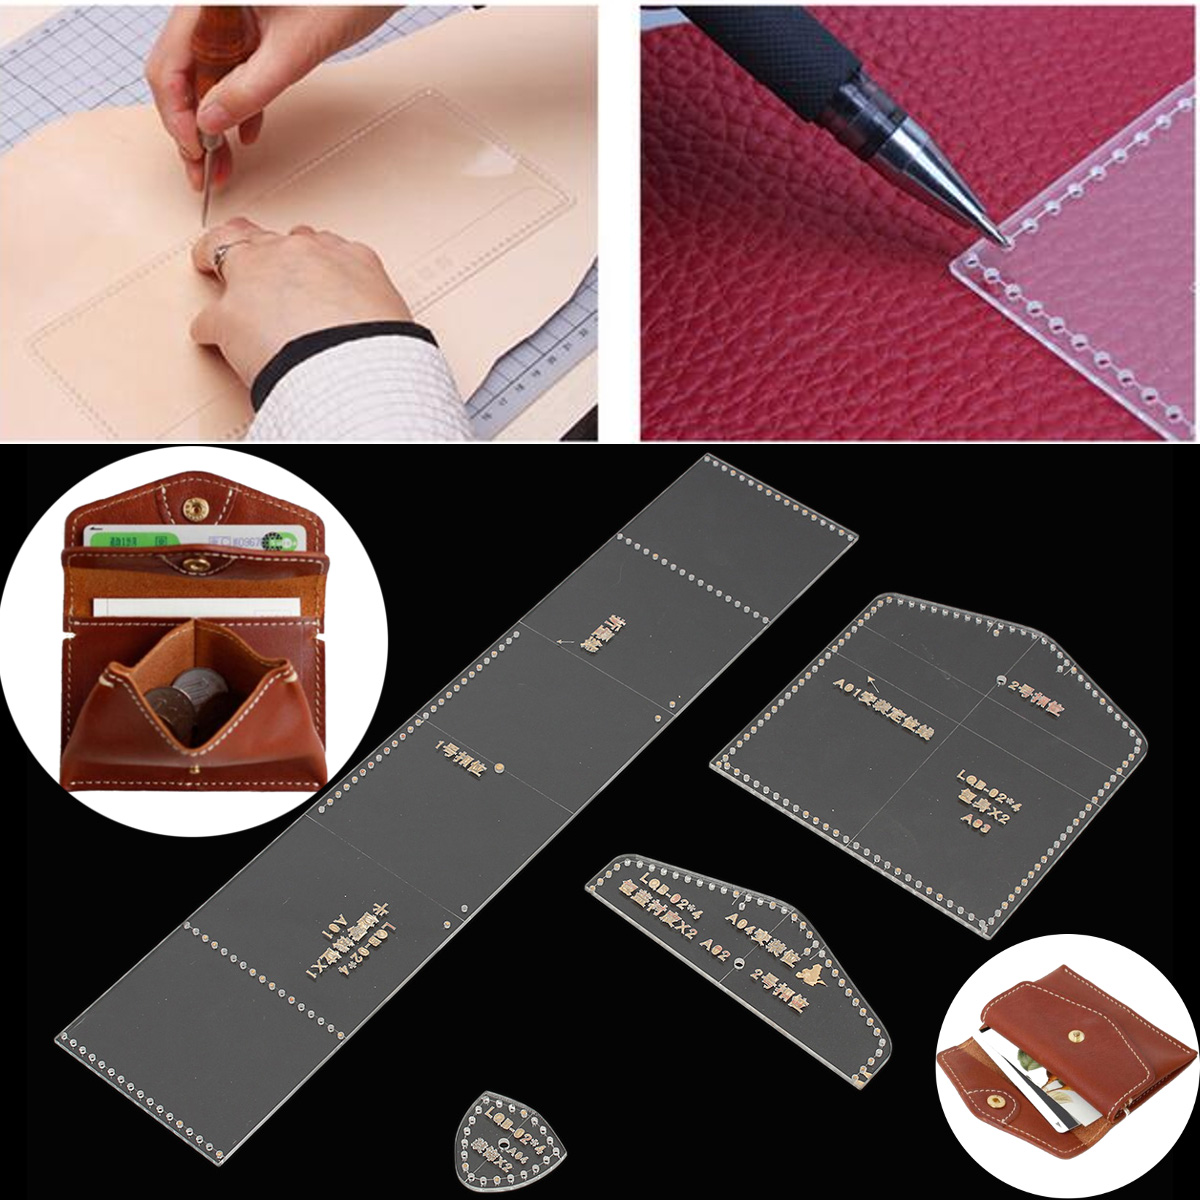 Acrylic Template Leather Pattern Acrylic Sheet Pattern Leather Templates Craft Tools